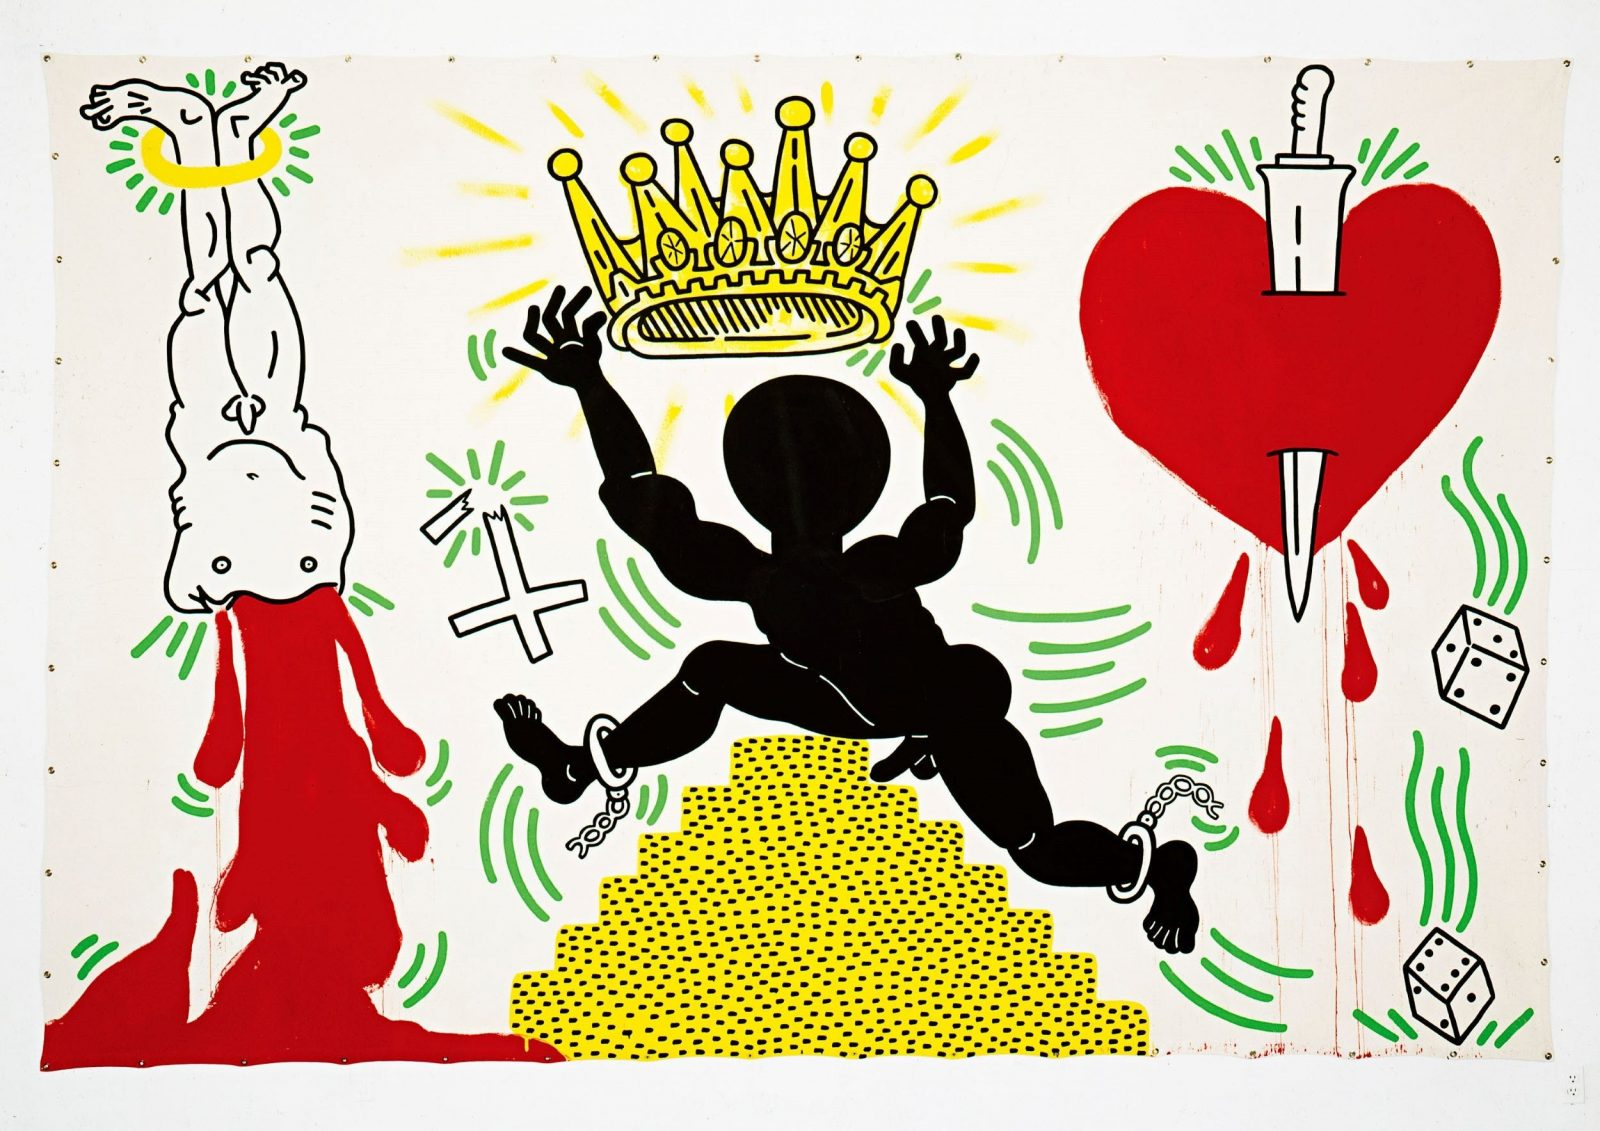 Keith Haring Prophets of rage 1988 acrylic on canvas 304.8 x 457.2 cm The Keith Haring Foundation